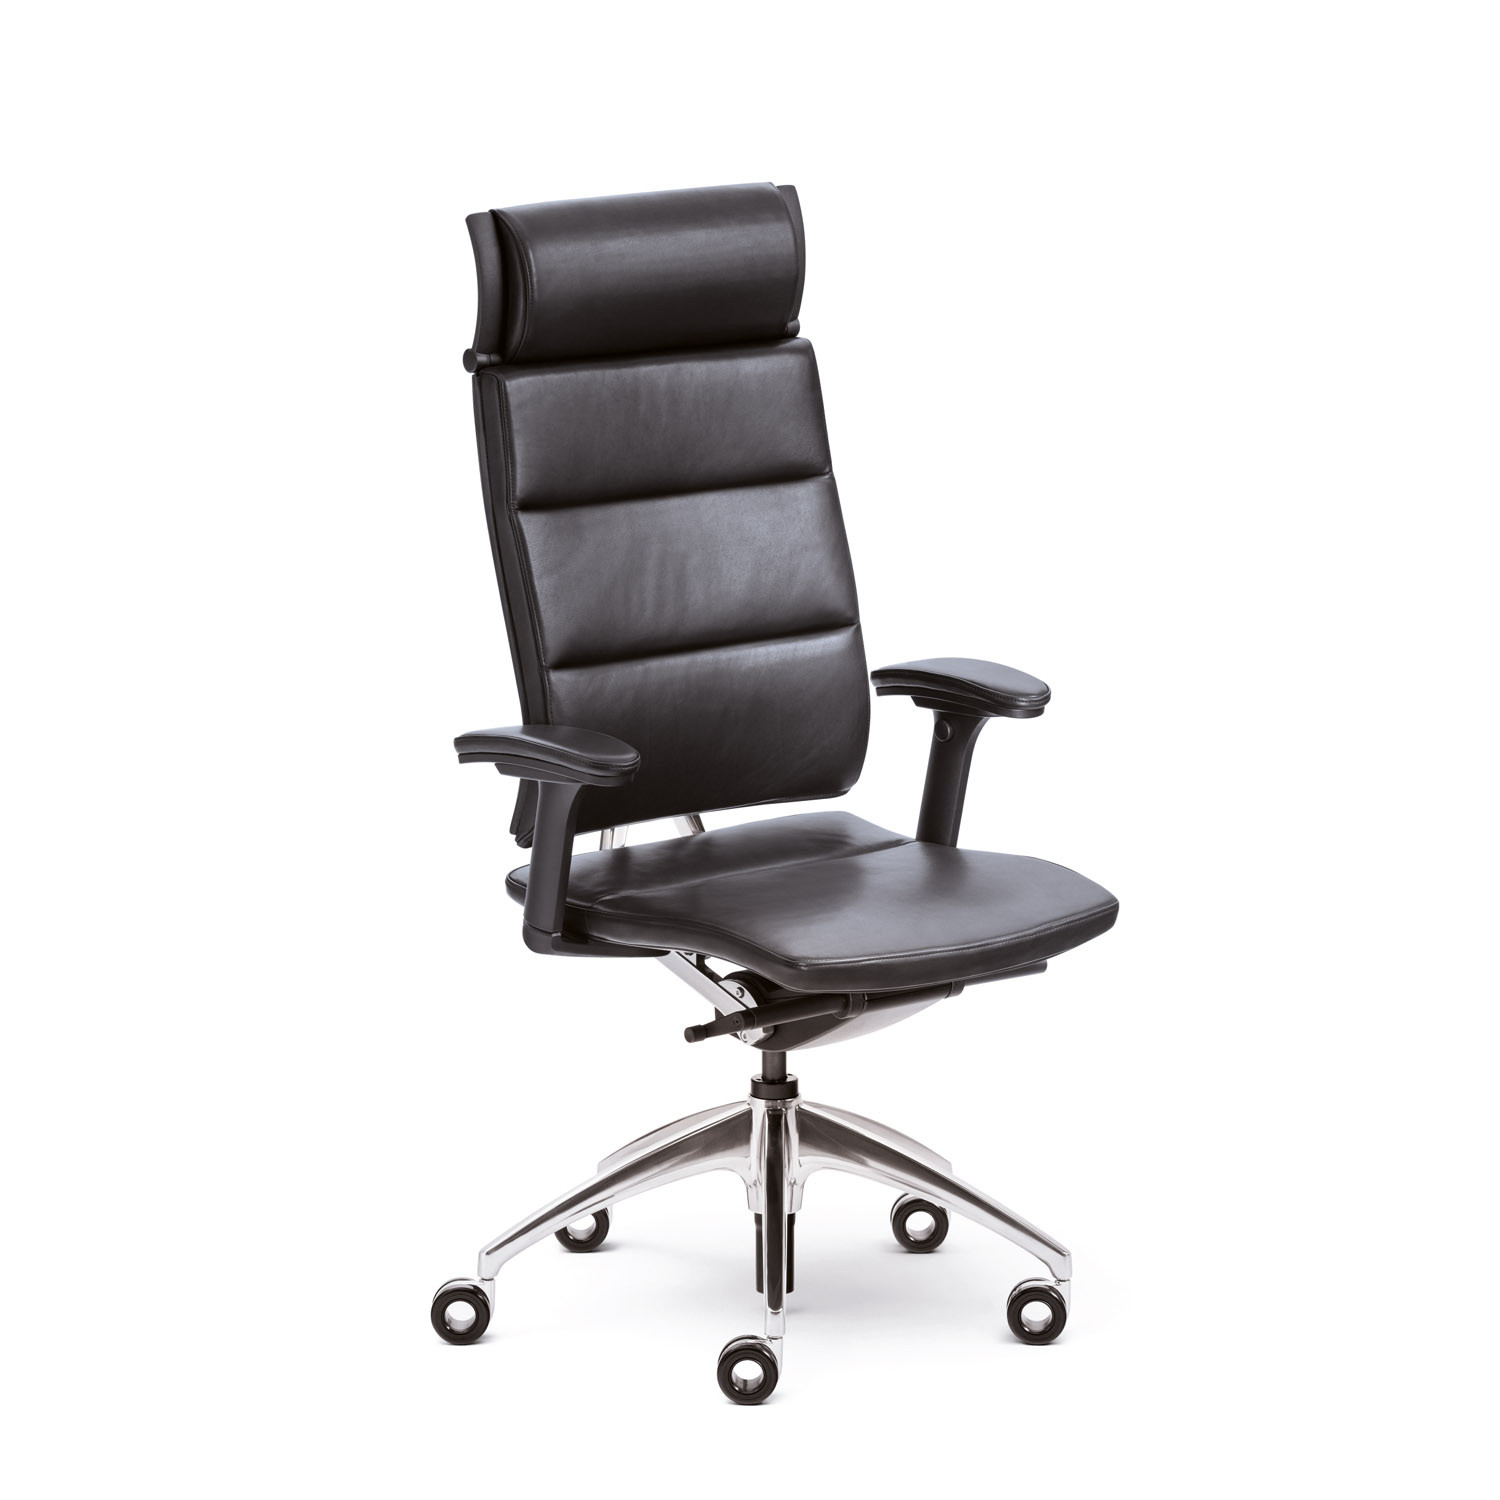 Open Up Modern Classic Chair Ergonomic Office Chairs Apres Furniture